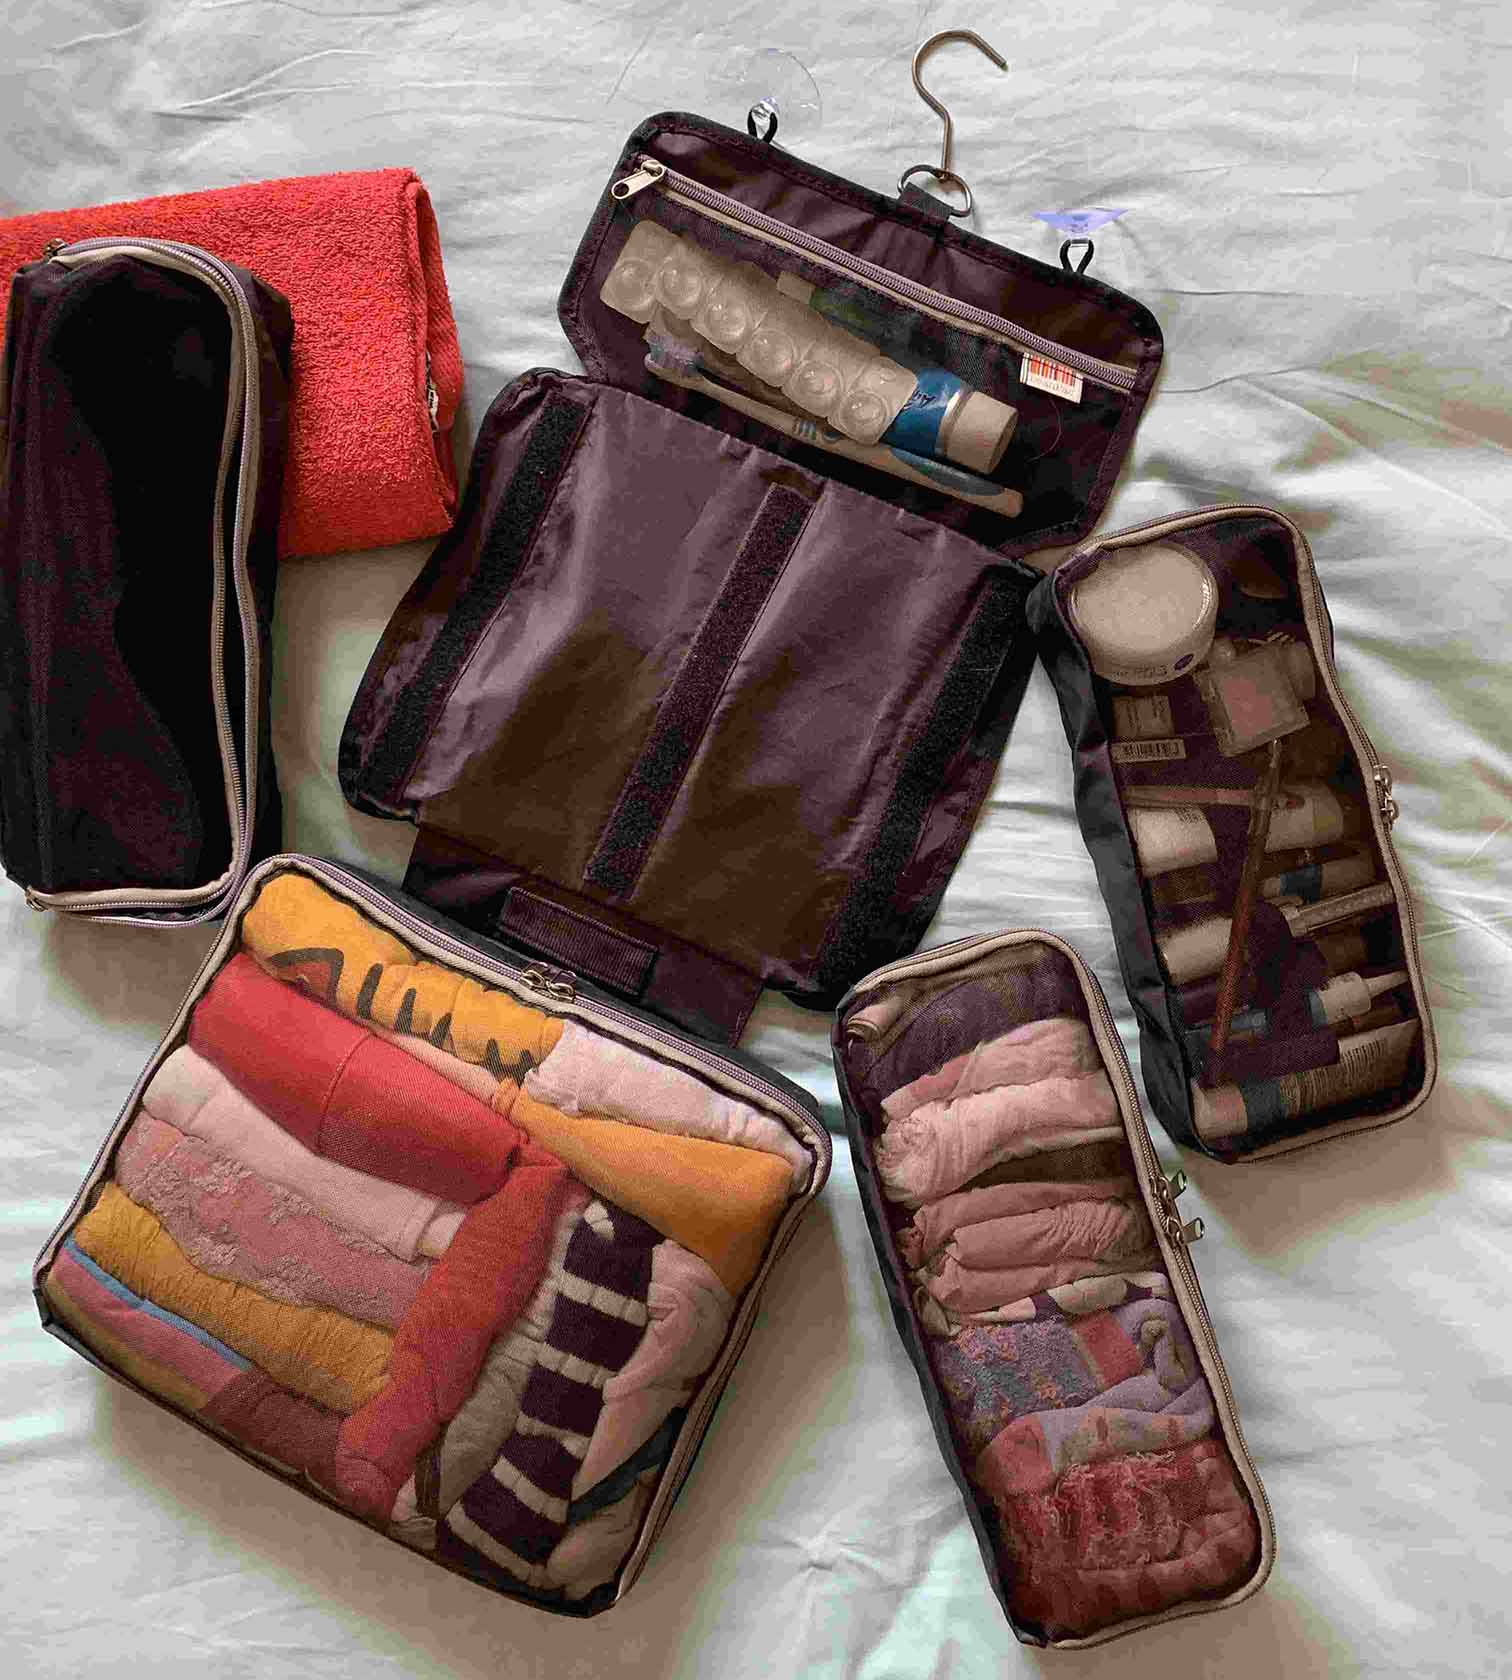 HangPac, extra large toiletry bag that works as overnight bag to pack & hold all you need! A pocket for each occasion and optional extra pockets available. Make-up, toiletries, cables, clothes?